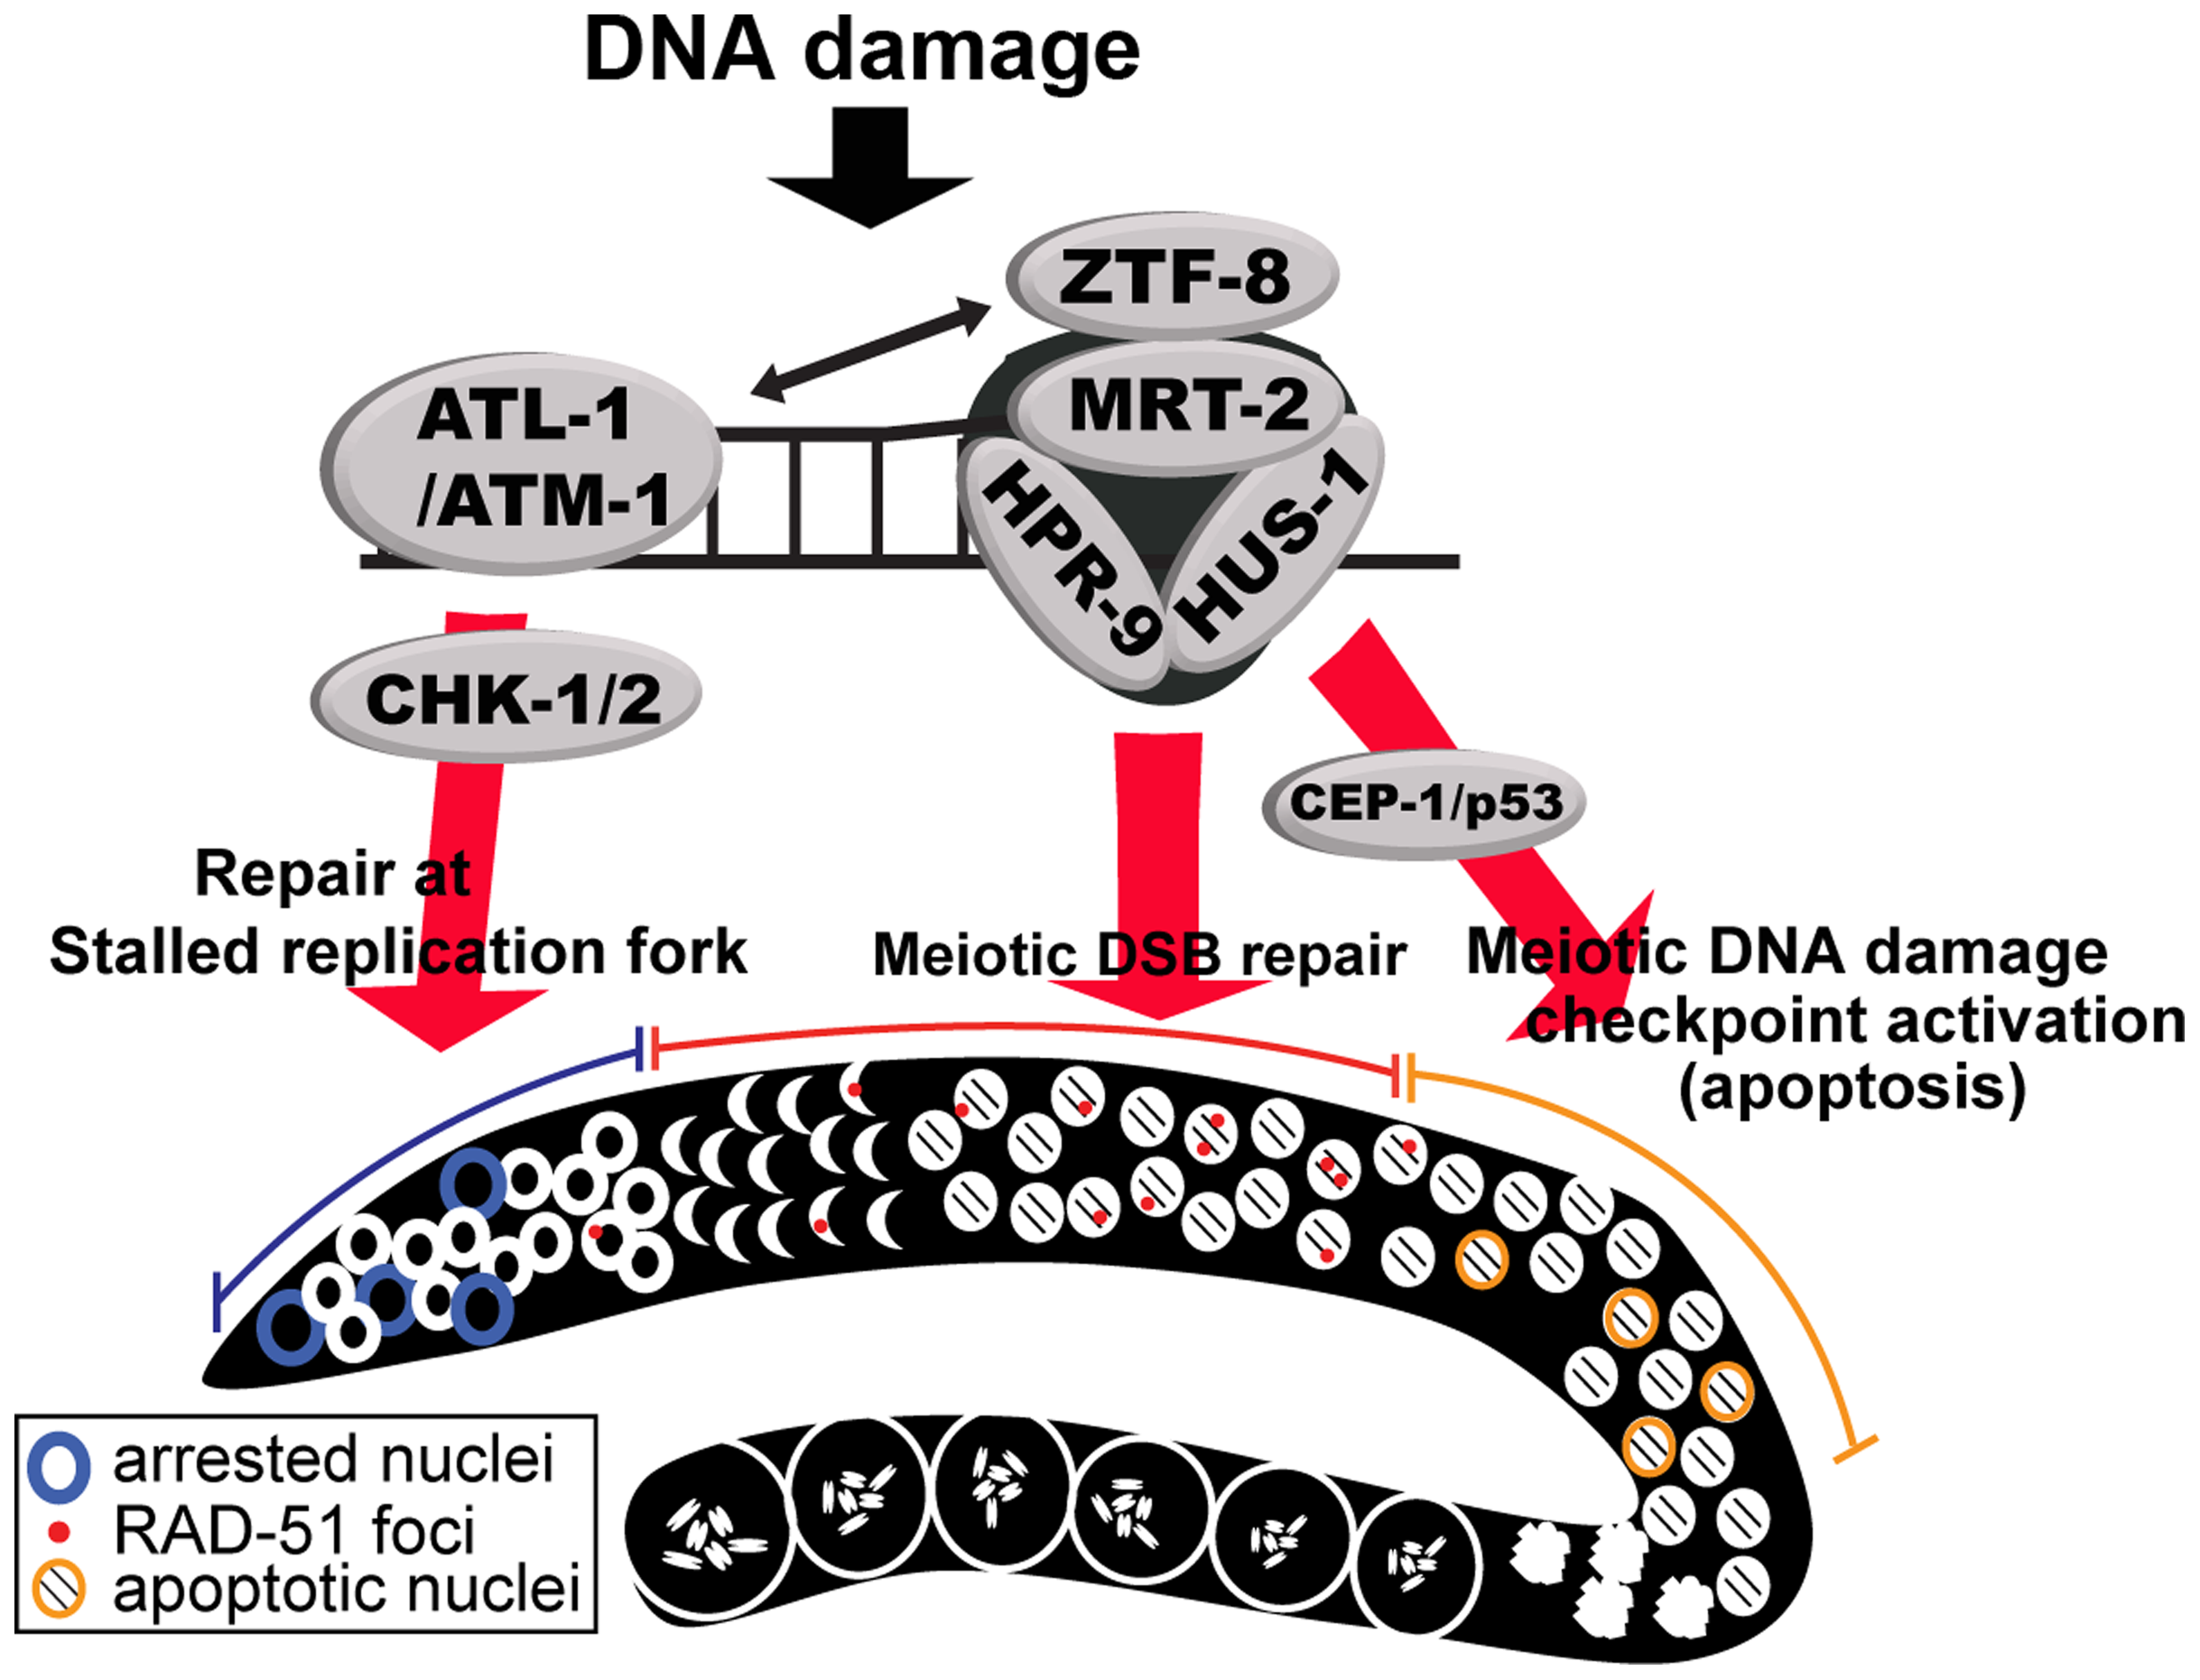 Model for the role of ZTF-8 in DNA damage response and repair.